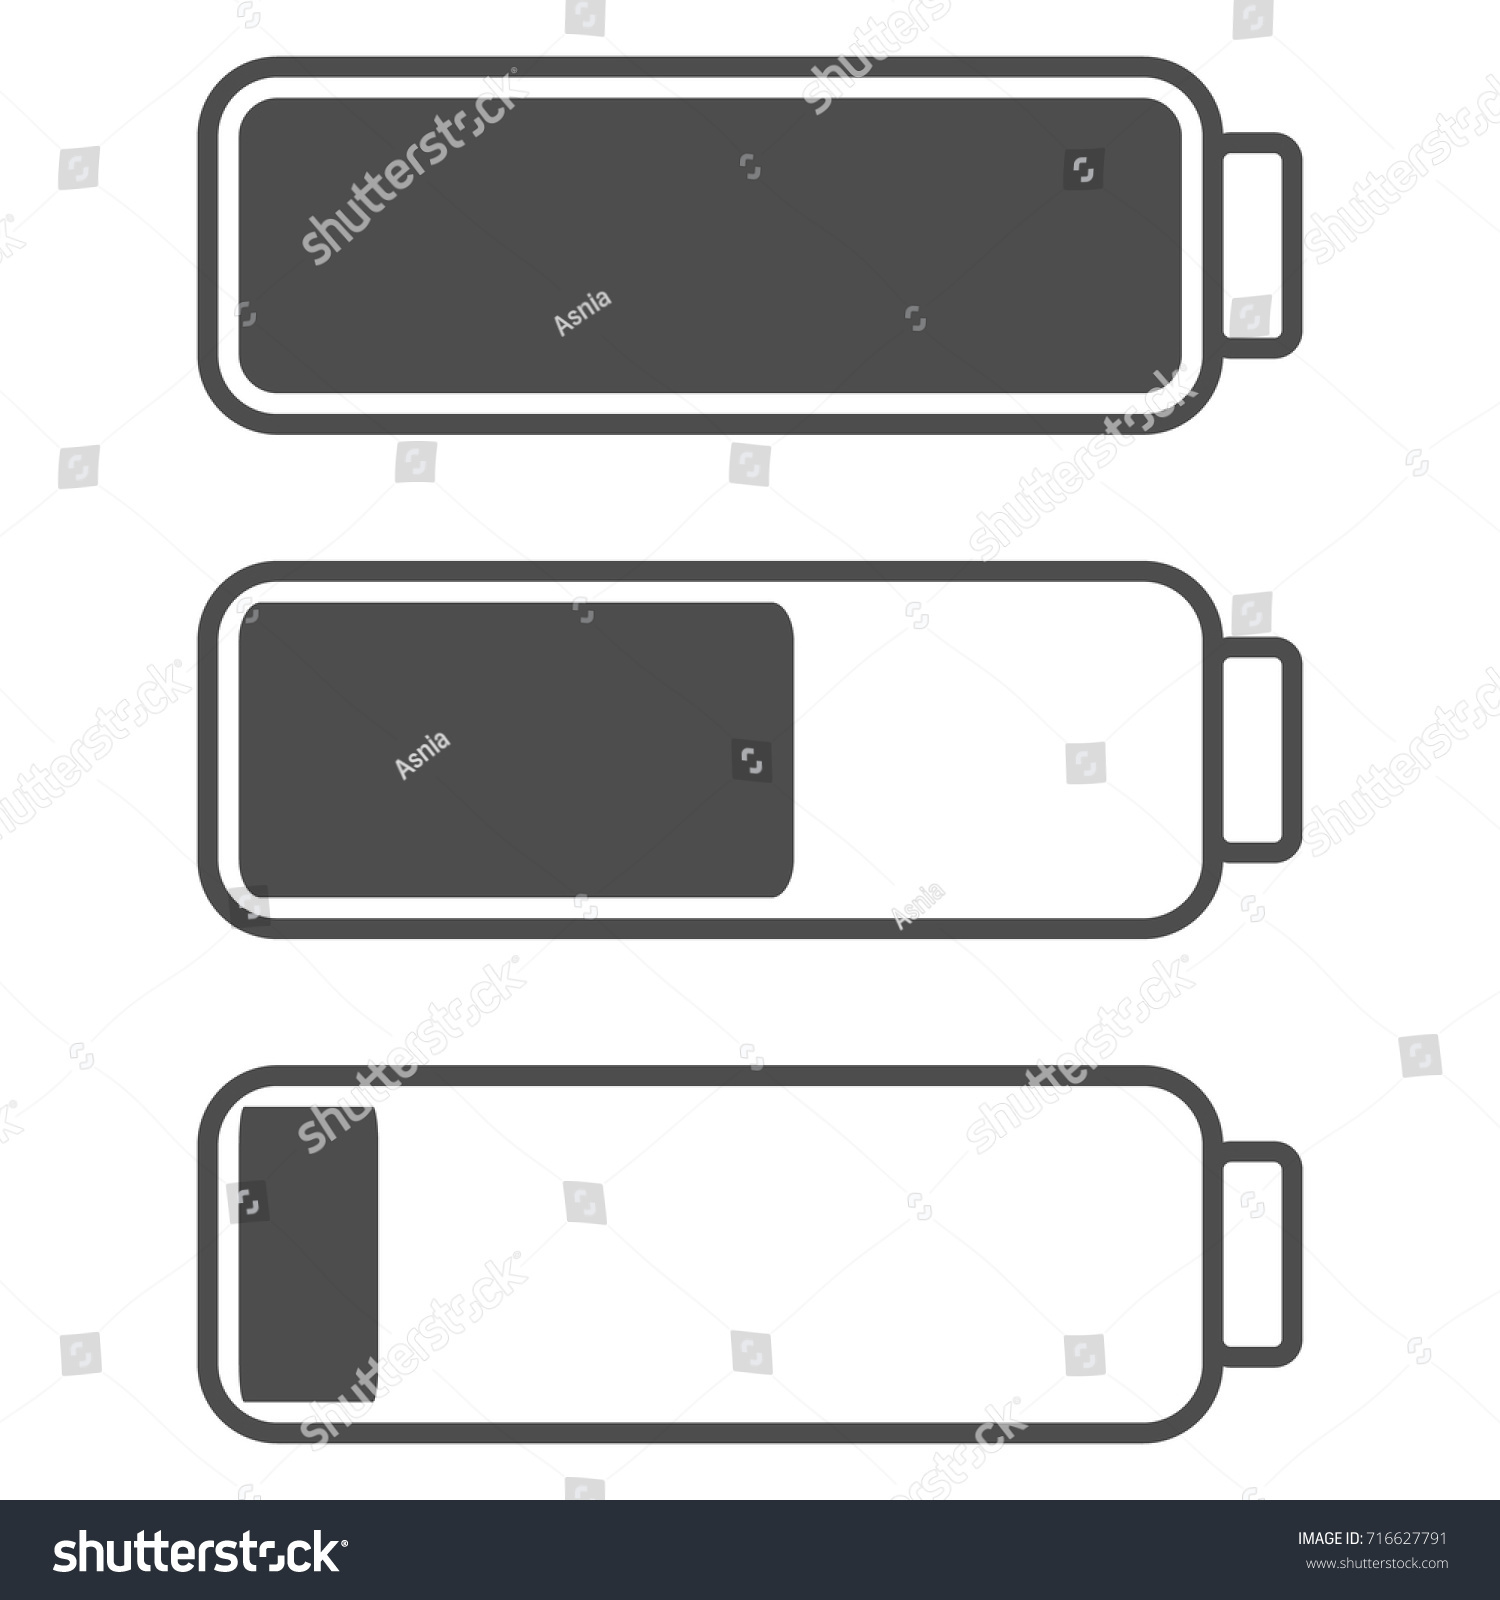 Outstanding Schematic Symbol For Battery Images - Everything You ...